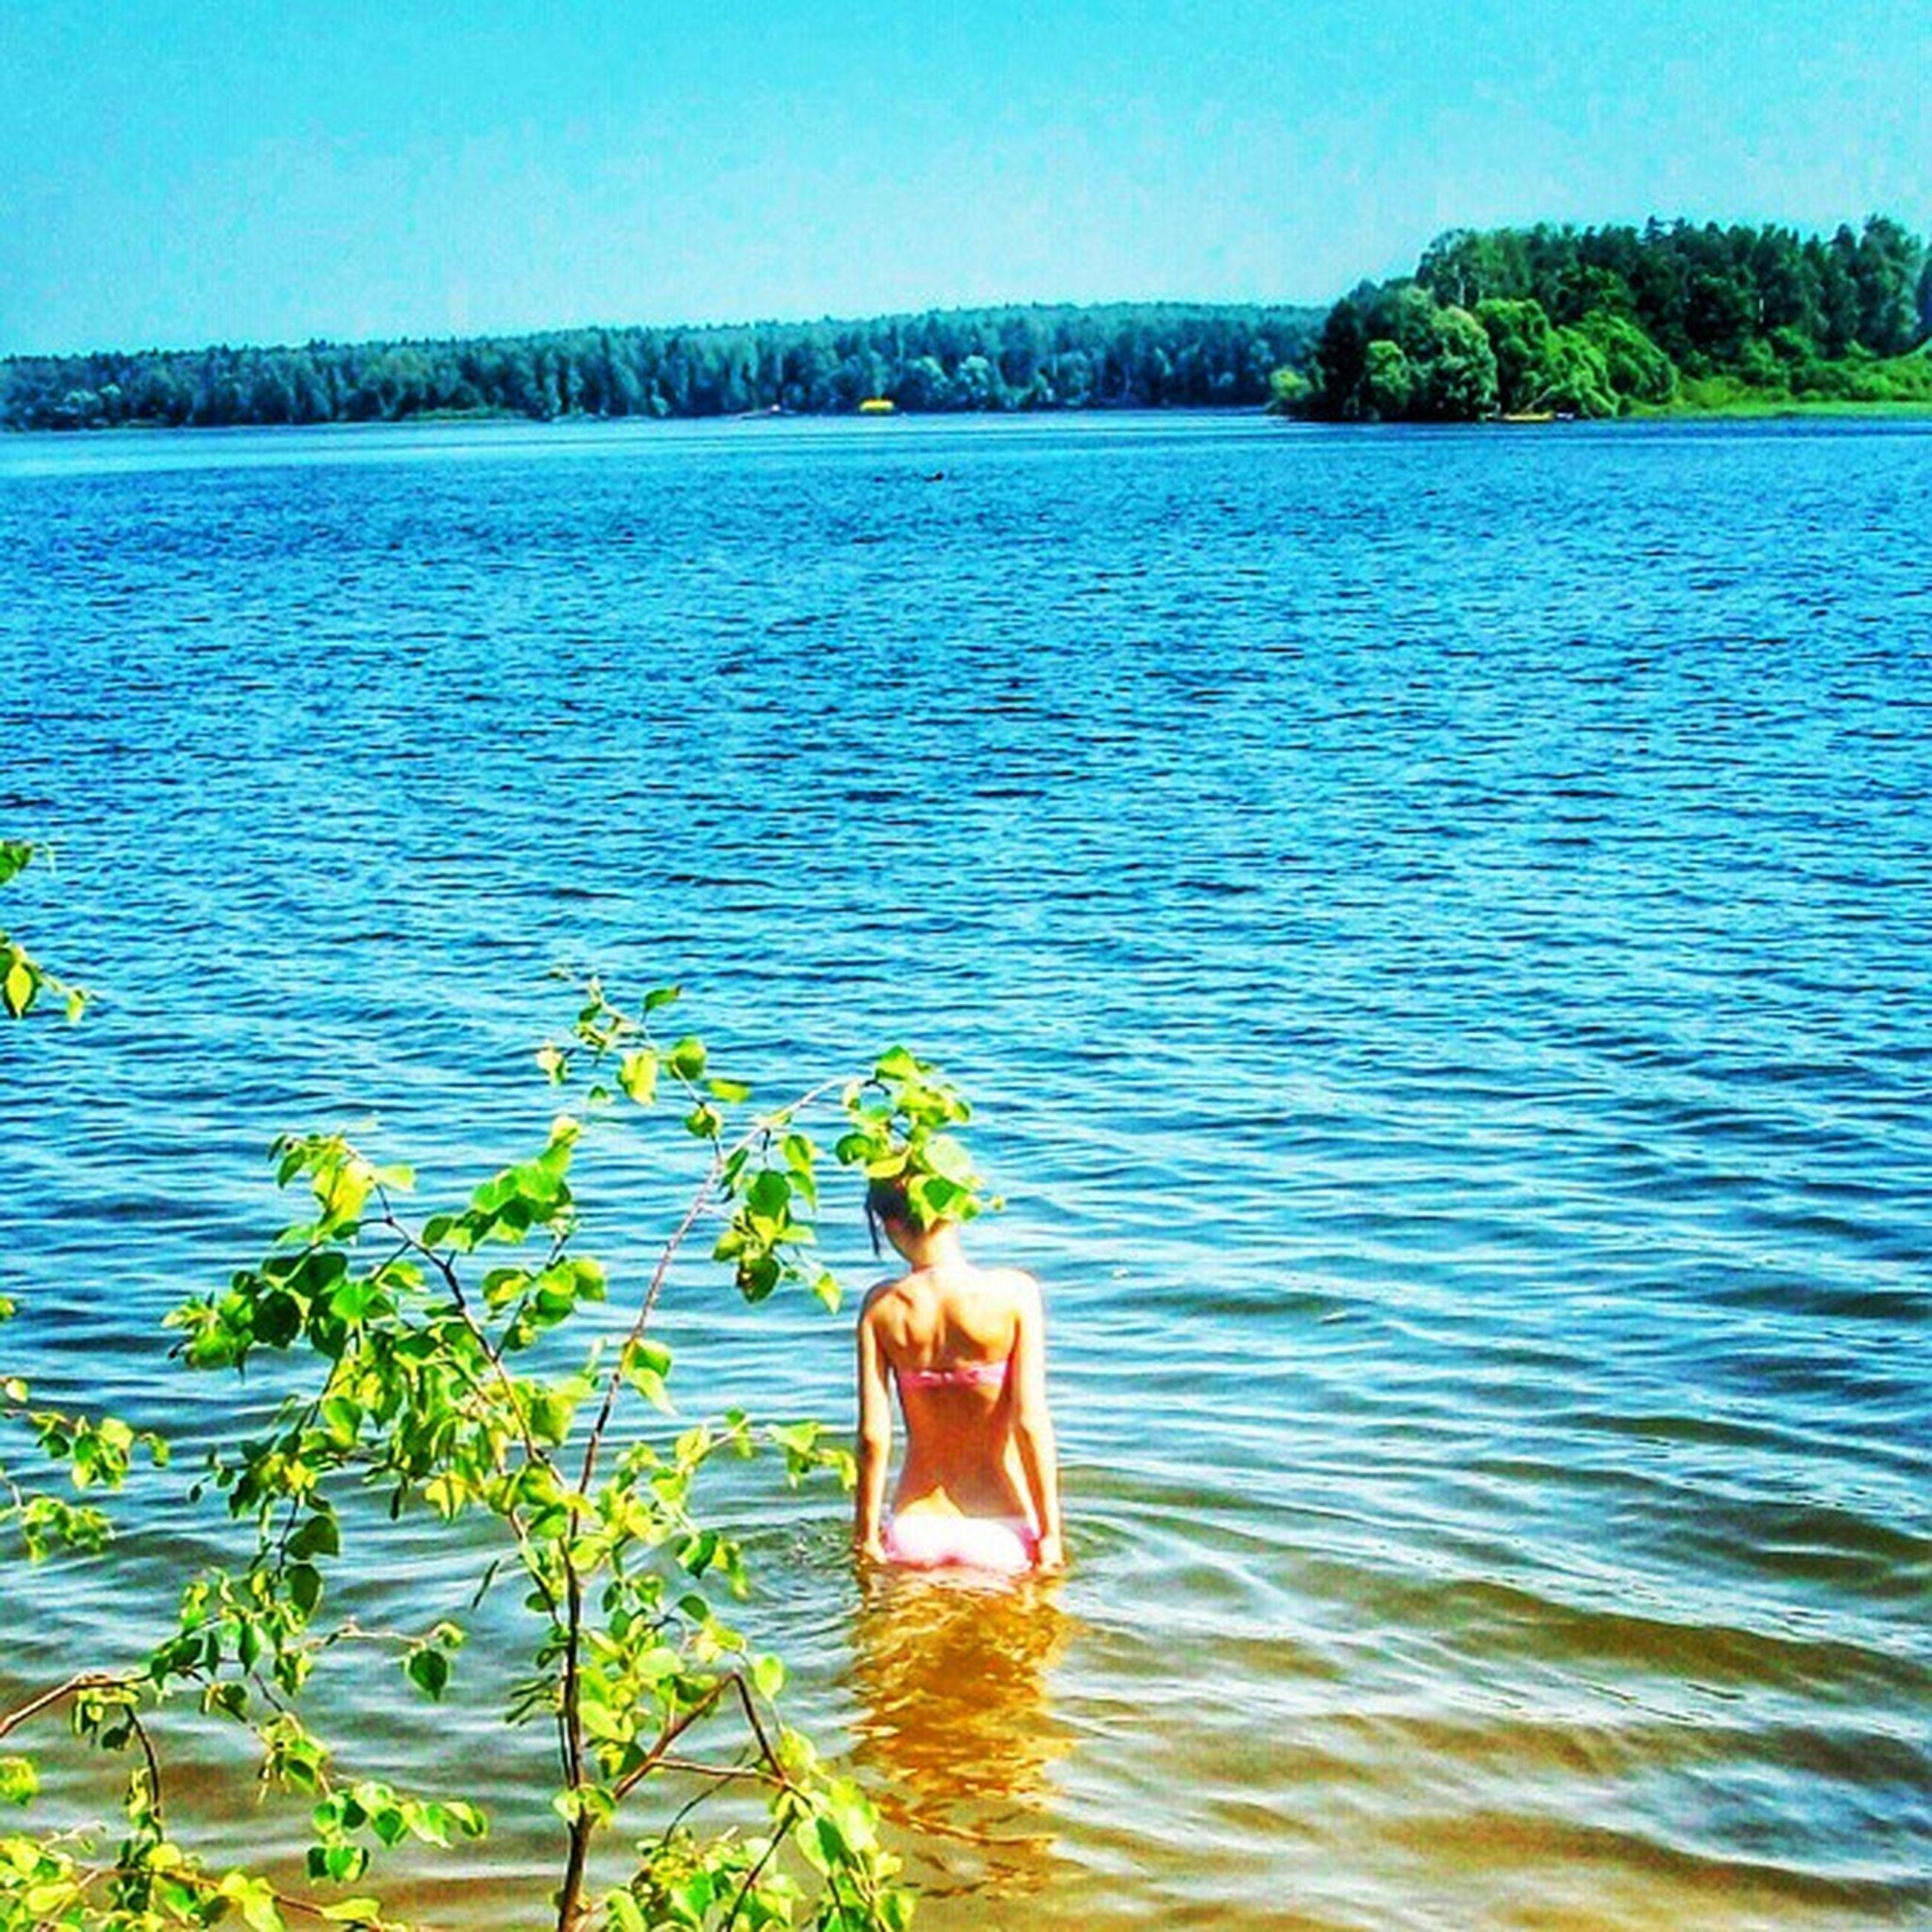 water, blue, tranquility, tranquil scene, rear view, lake, beauty in nature, scenics, rippled, nature, clear sky, idyllic, standing, leisure activity, lifestyles, person, men, tree